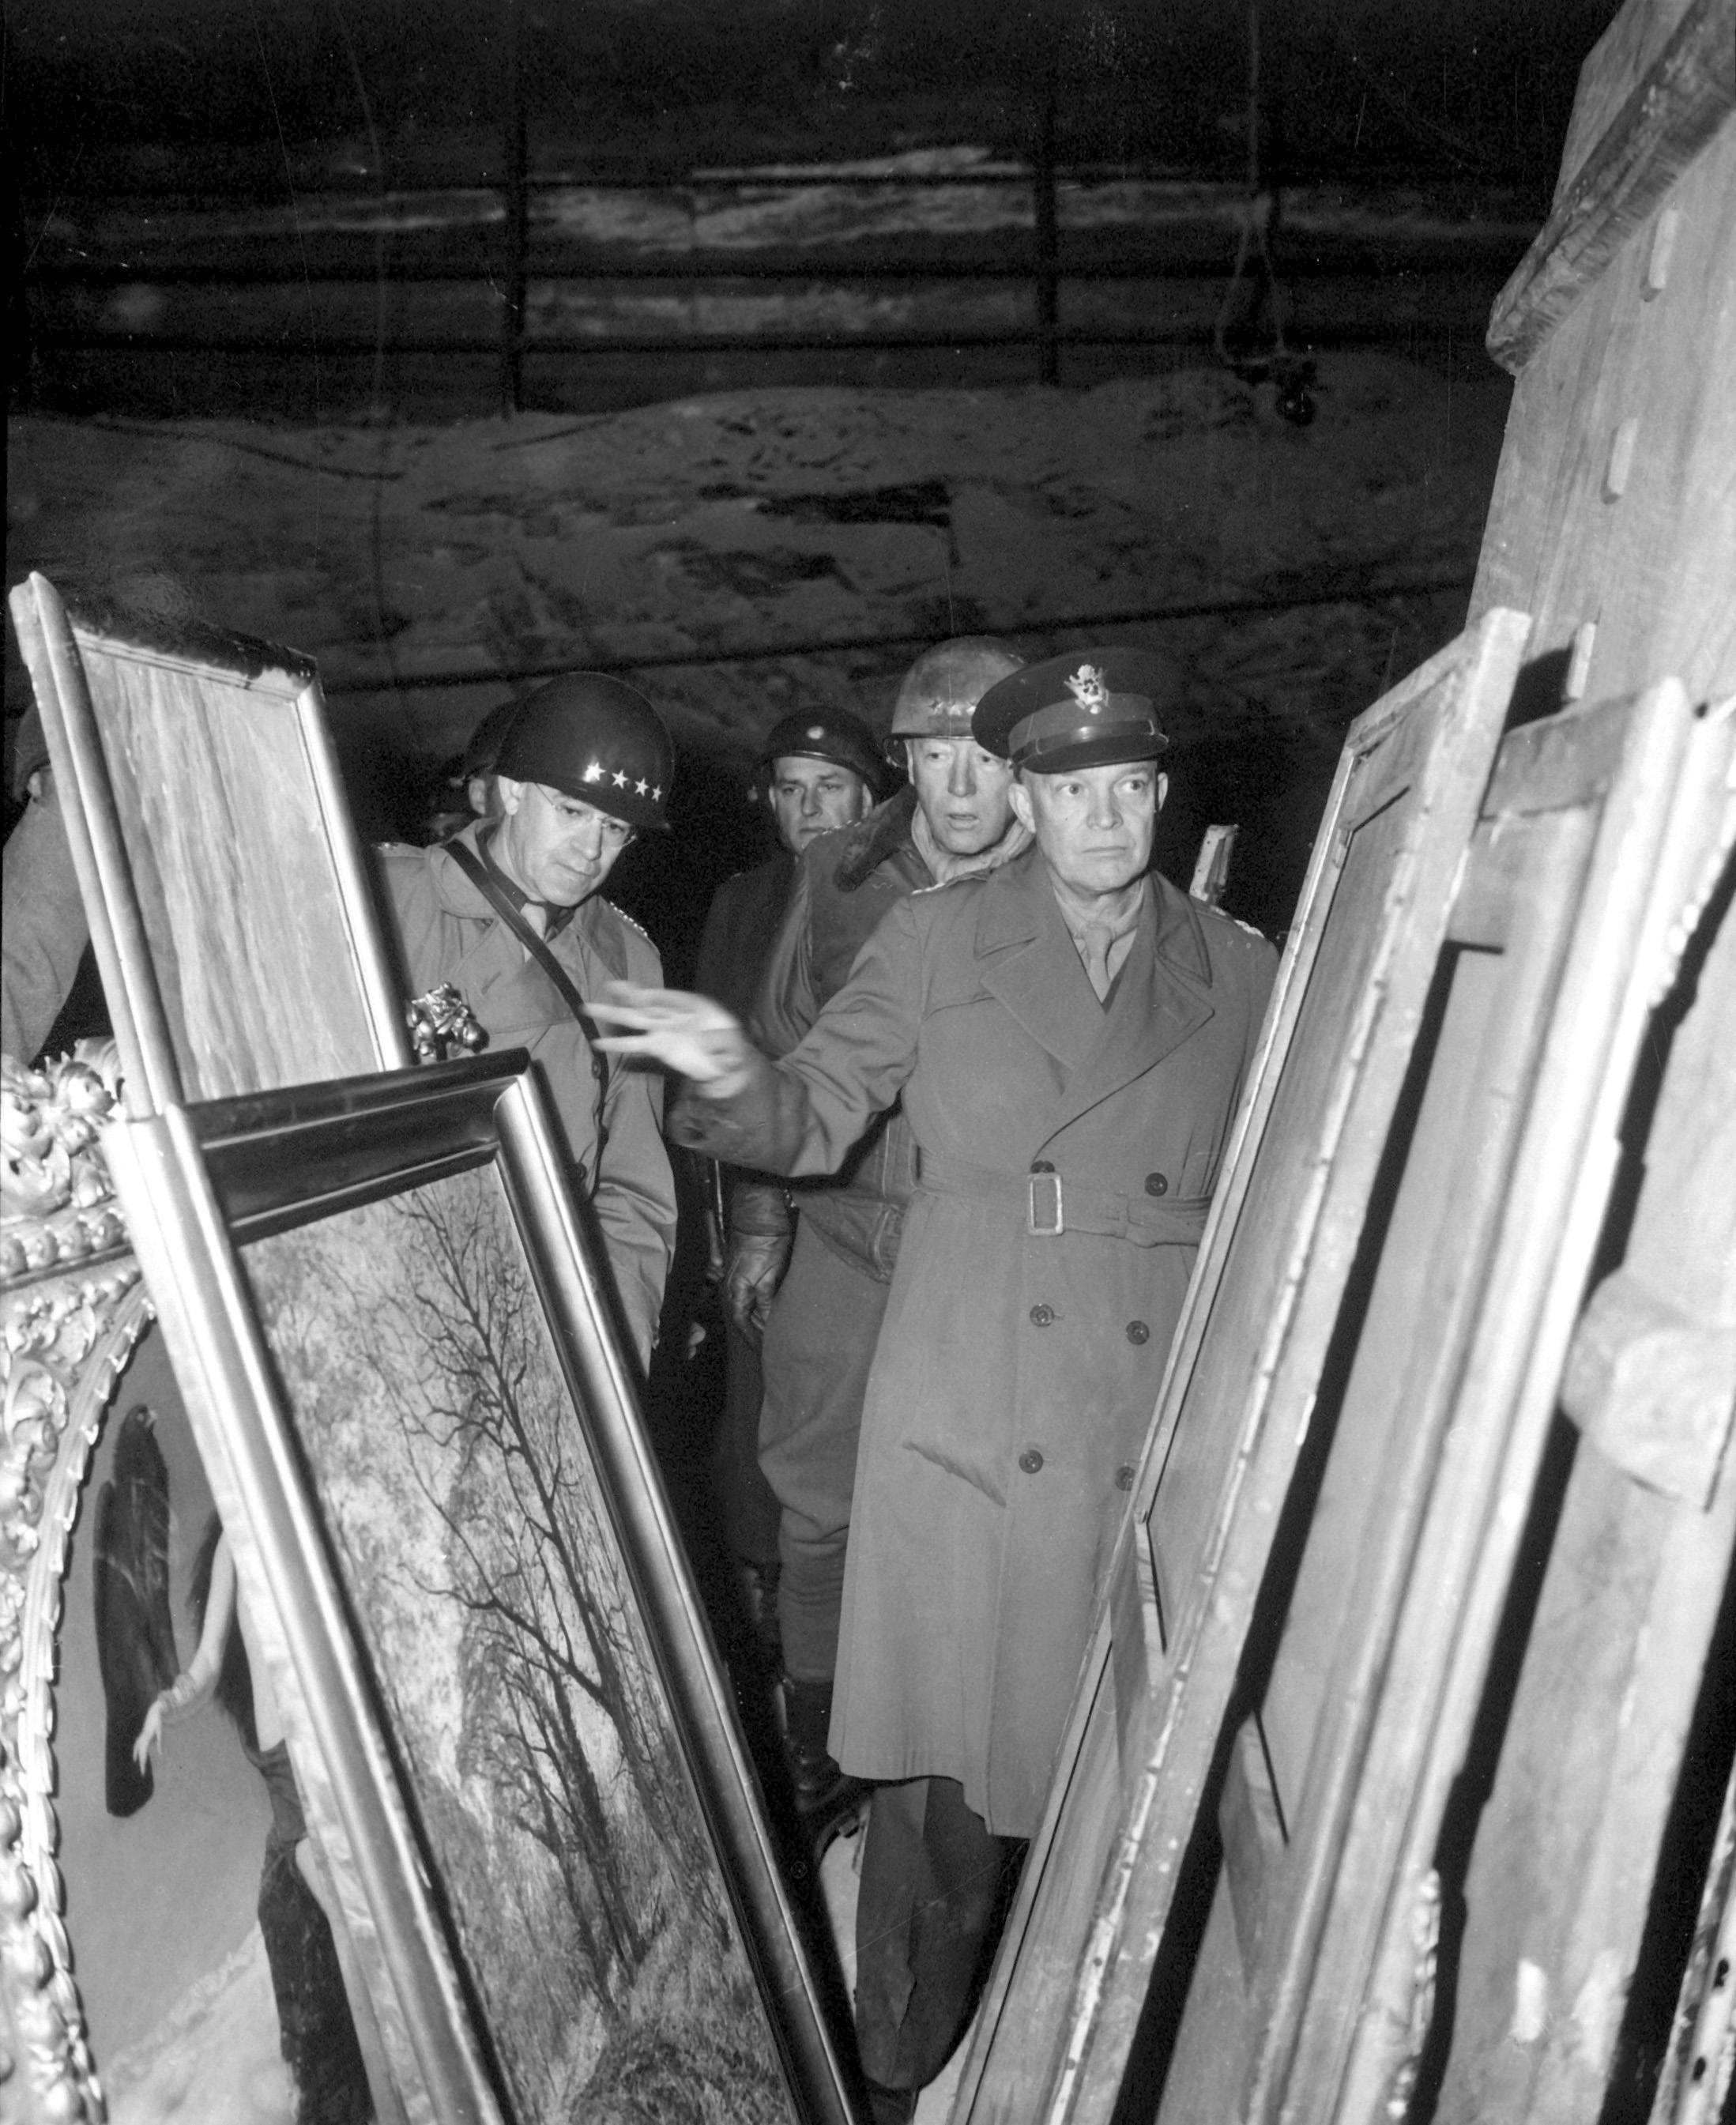 U.S General Dwight D. Eisenhower, Supreme Allied Commander, accompanied by General Omar N. Bradley and Lieutenant General George S. Patton, Jr., inspects art treasures secured from Allied air attacks by their being hidden in a salt mine in Germany. These artworks were looted and shipped to the United States where many are still illegally stored.